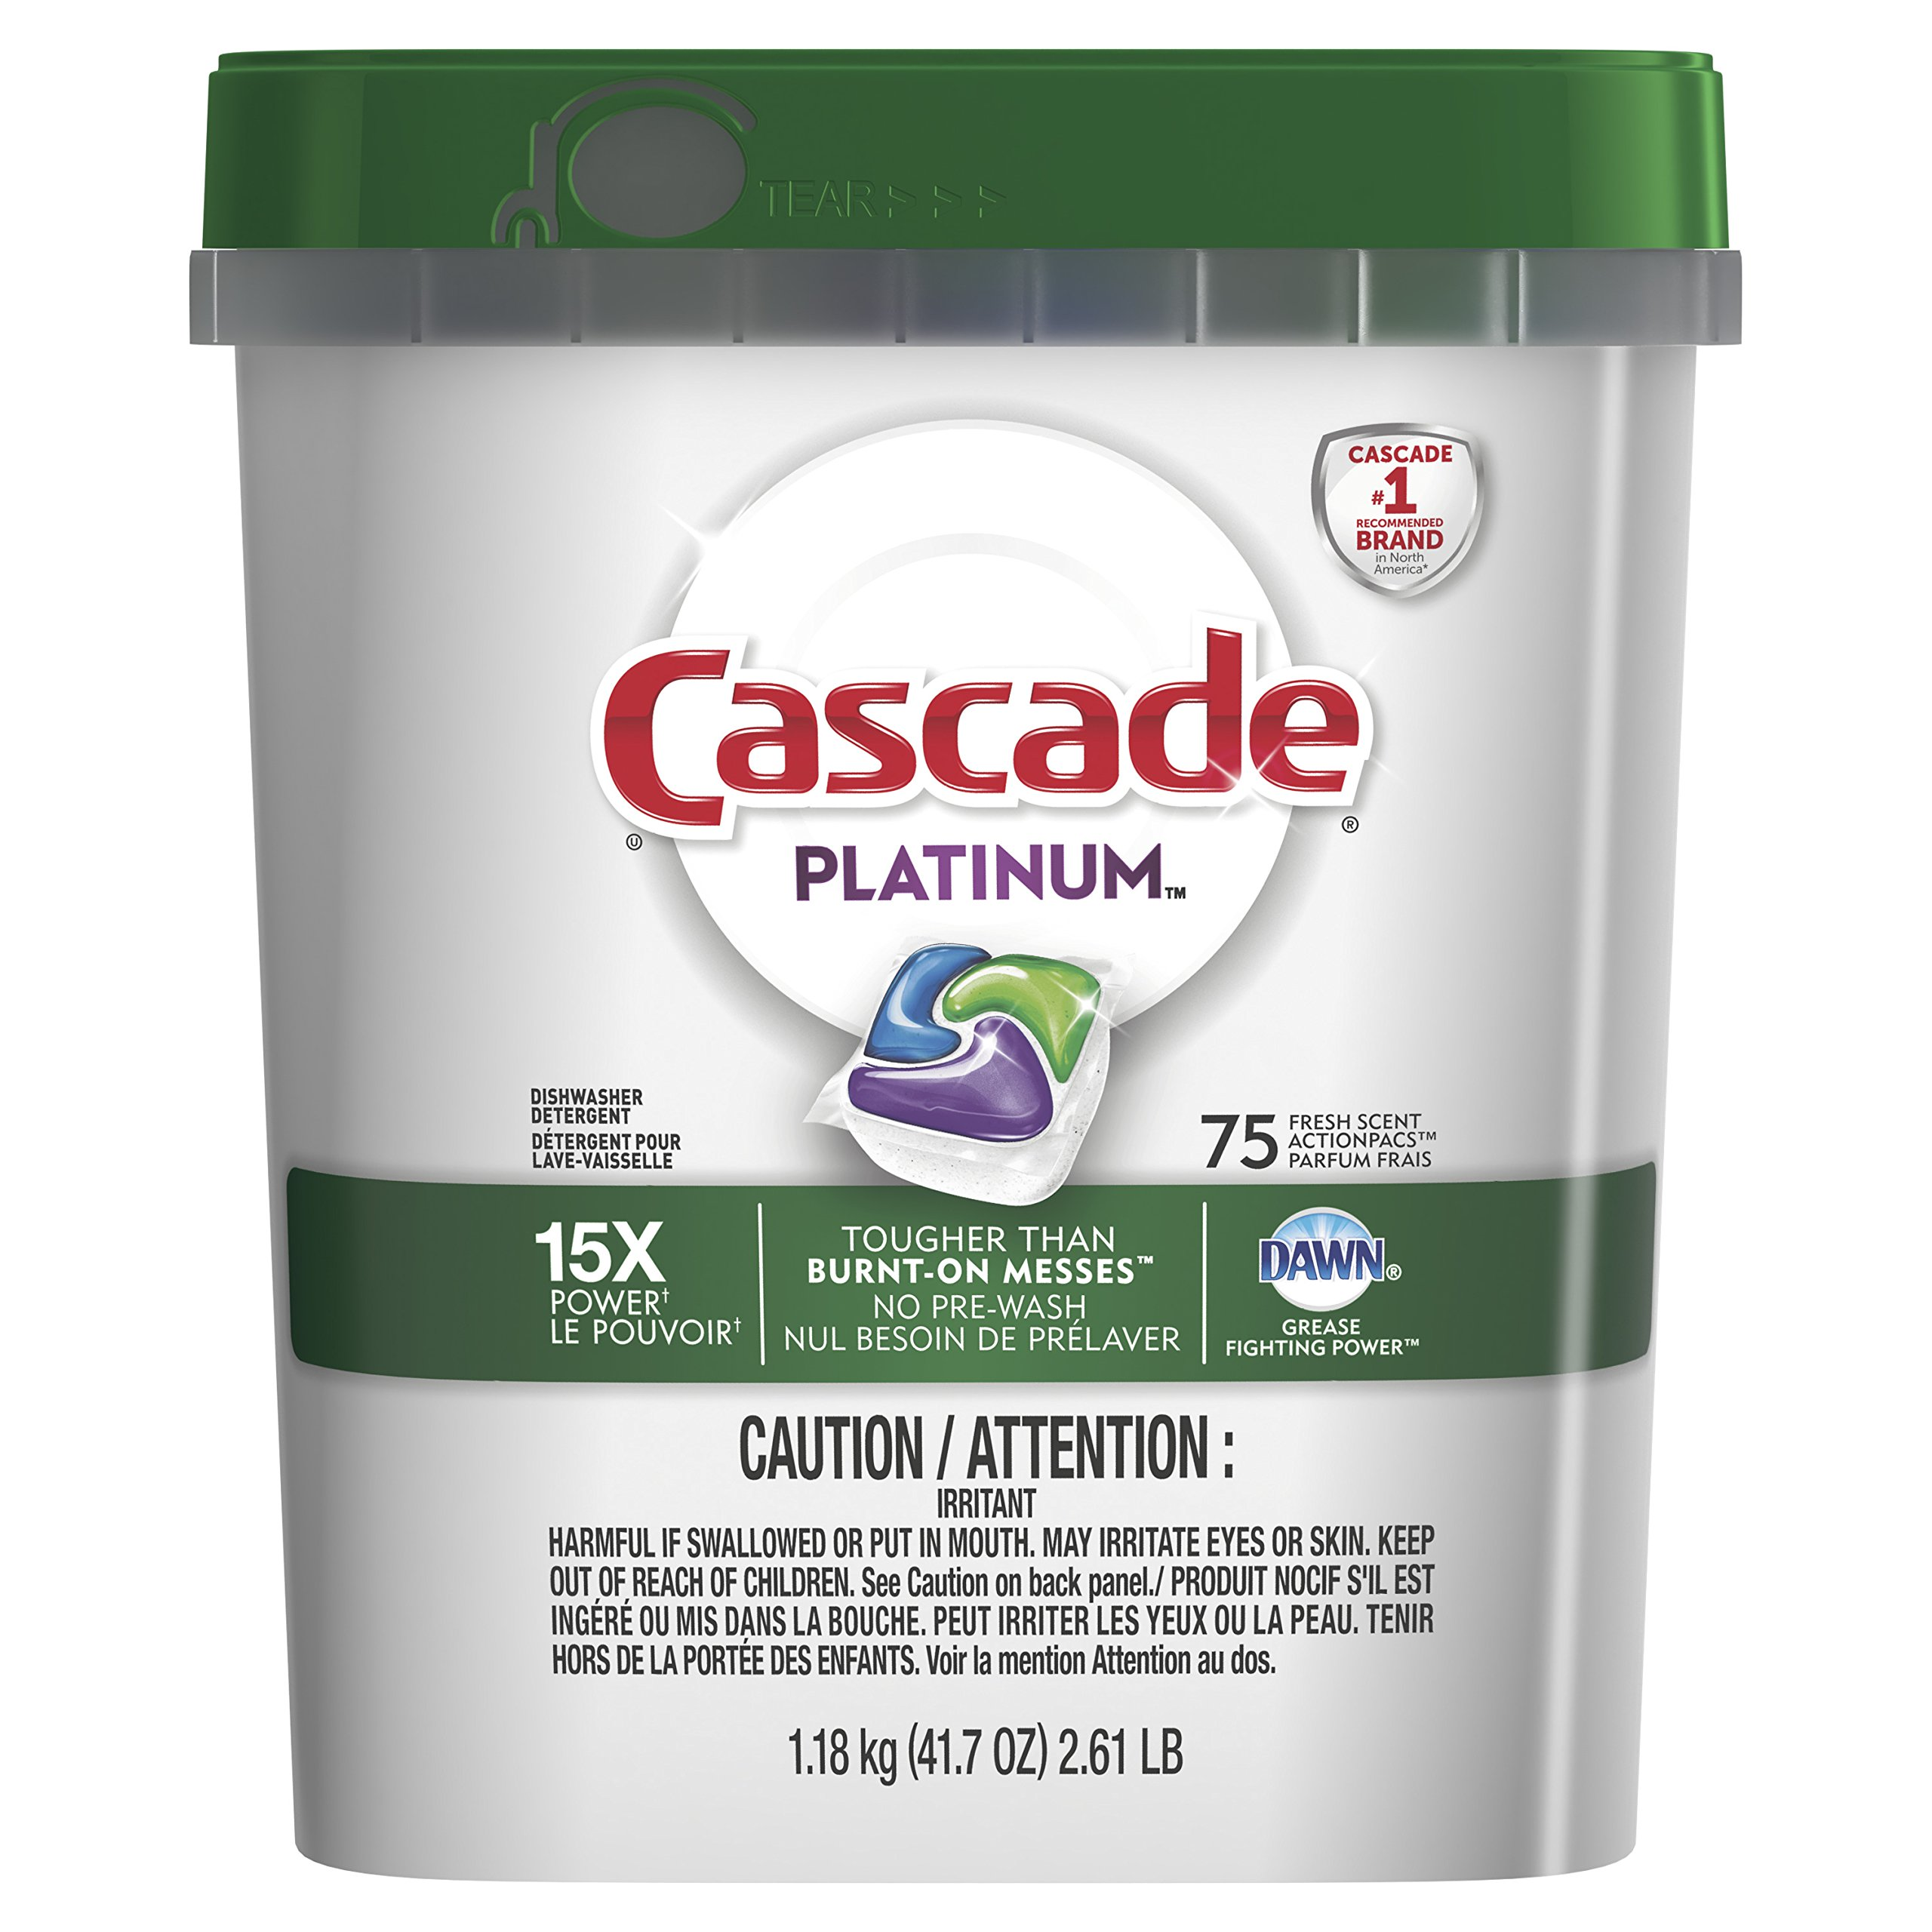 Cascade Platinum ActionPacs Dishwasher Detergent, Fresh Scent, 75 count, packaging may vary product image